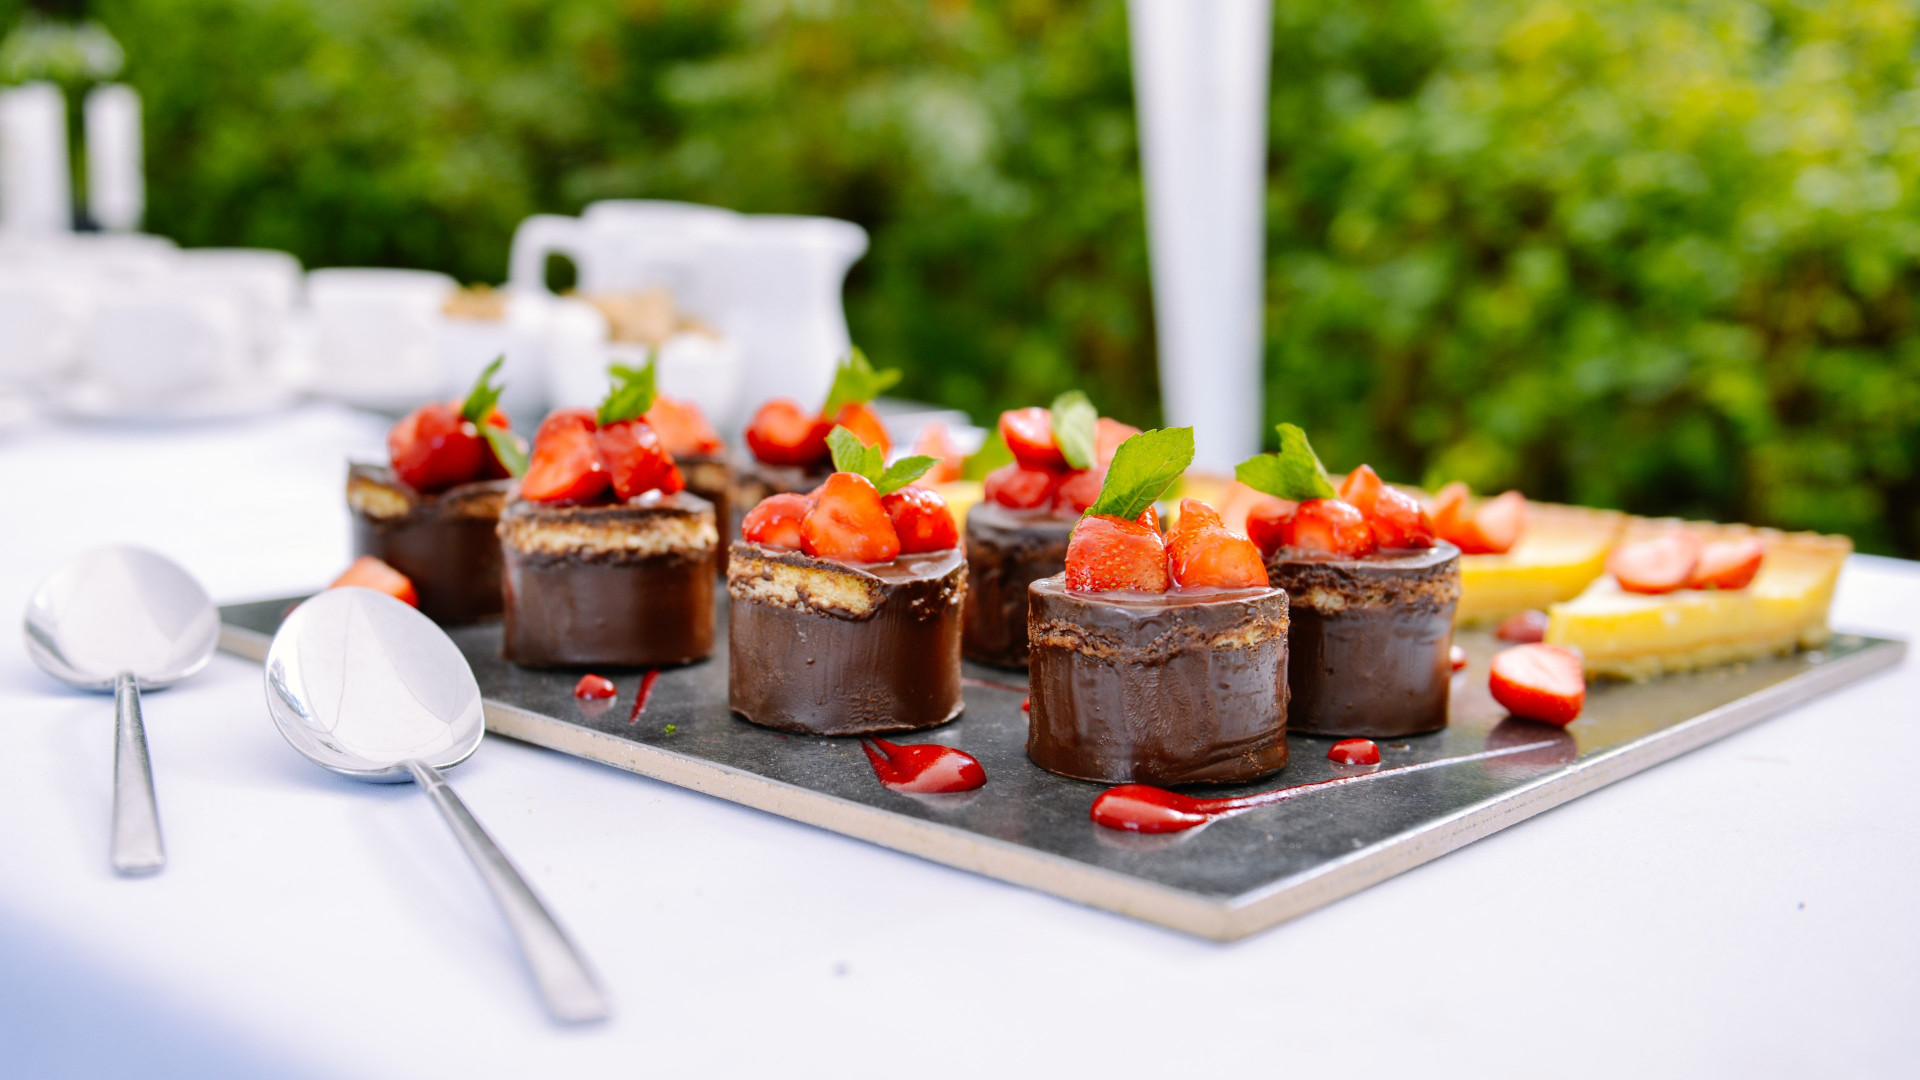 Chocolate cakes with strawberries wallpaper 1920x1080